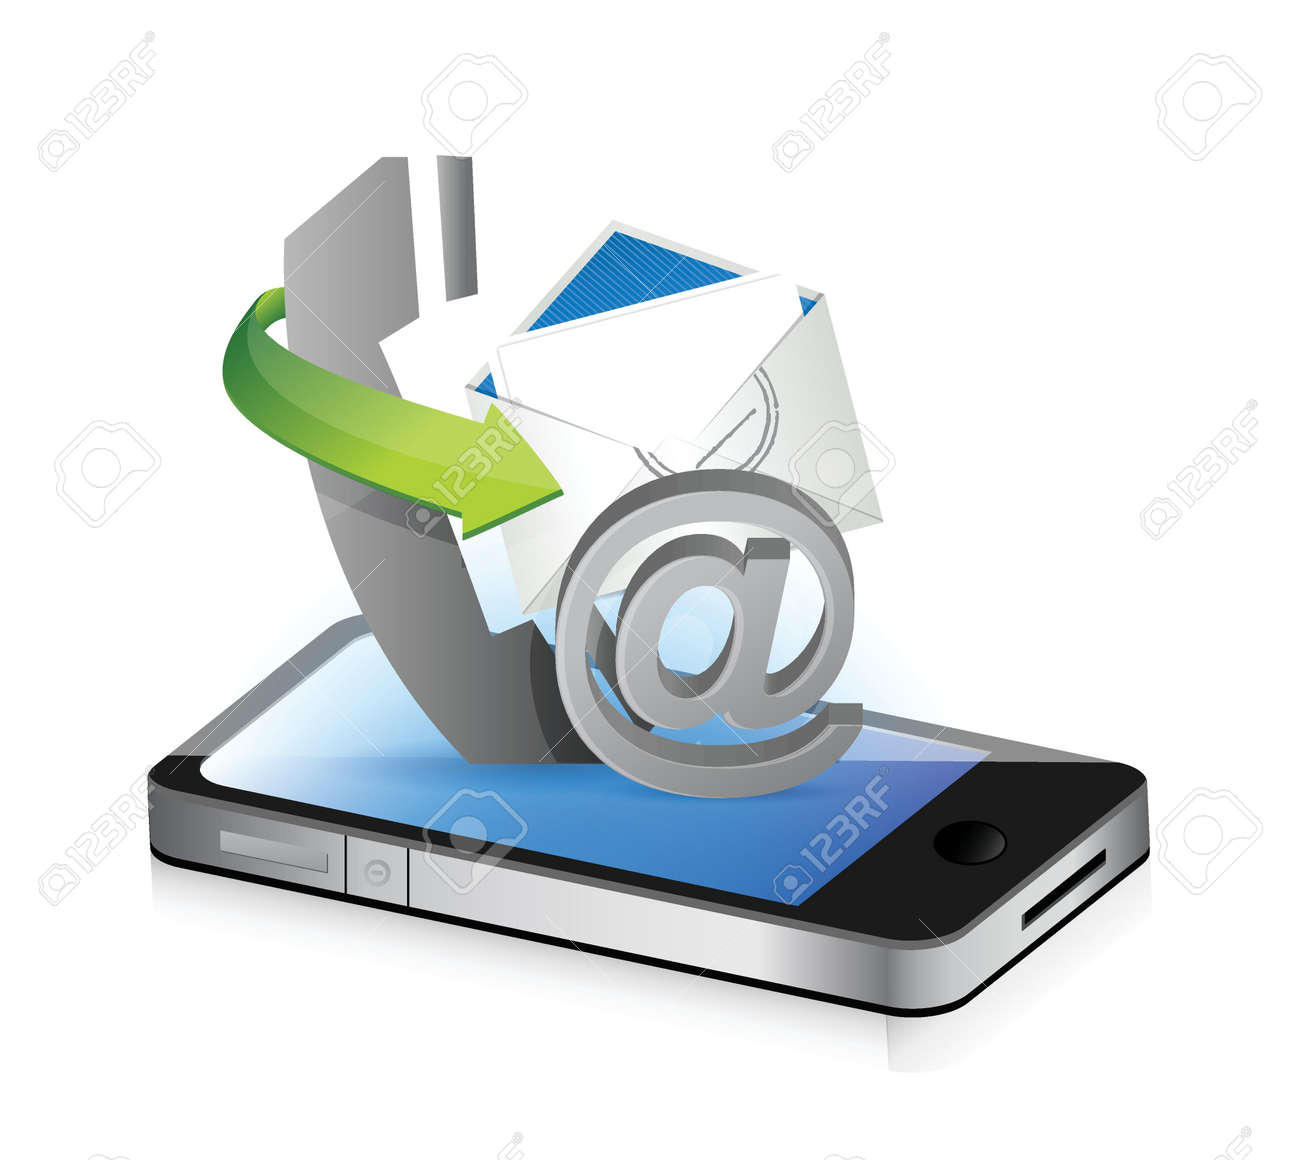 contact us smartphone illustration design concept graphic Stock Vector - 18279004